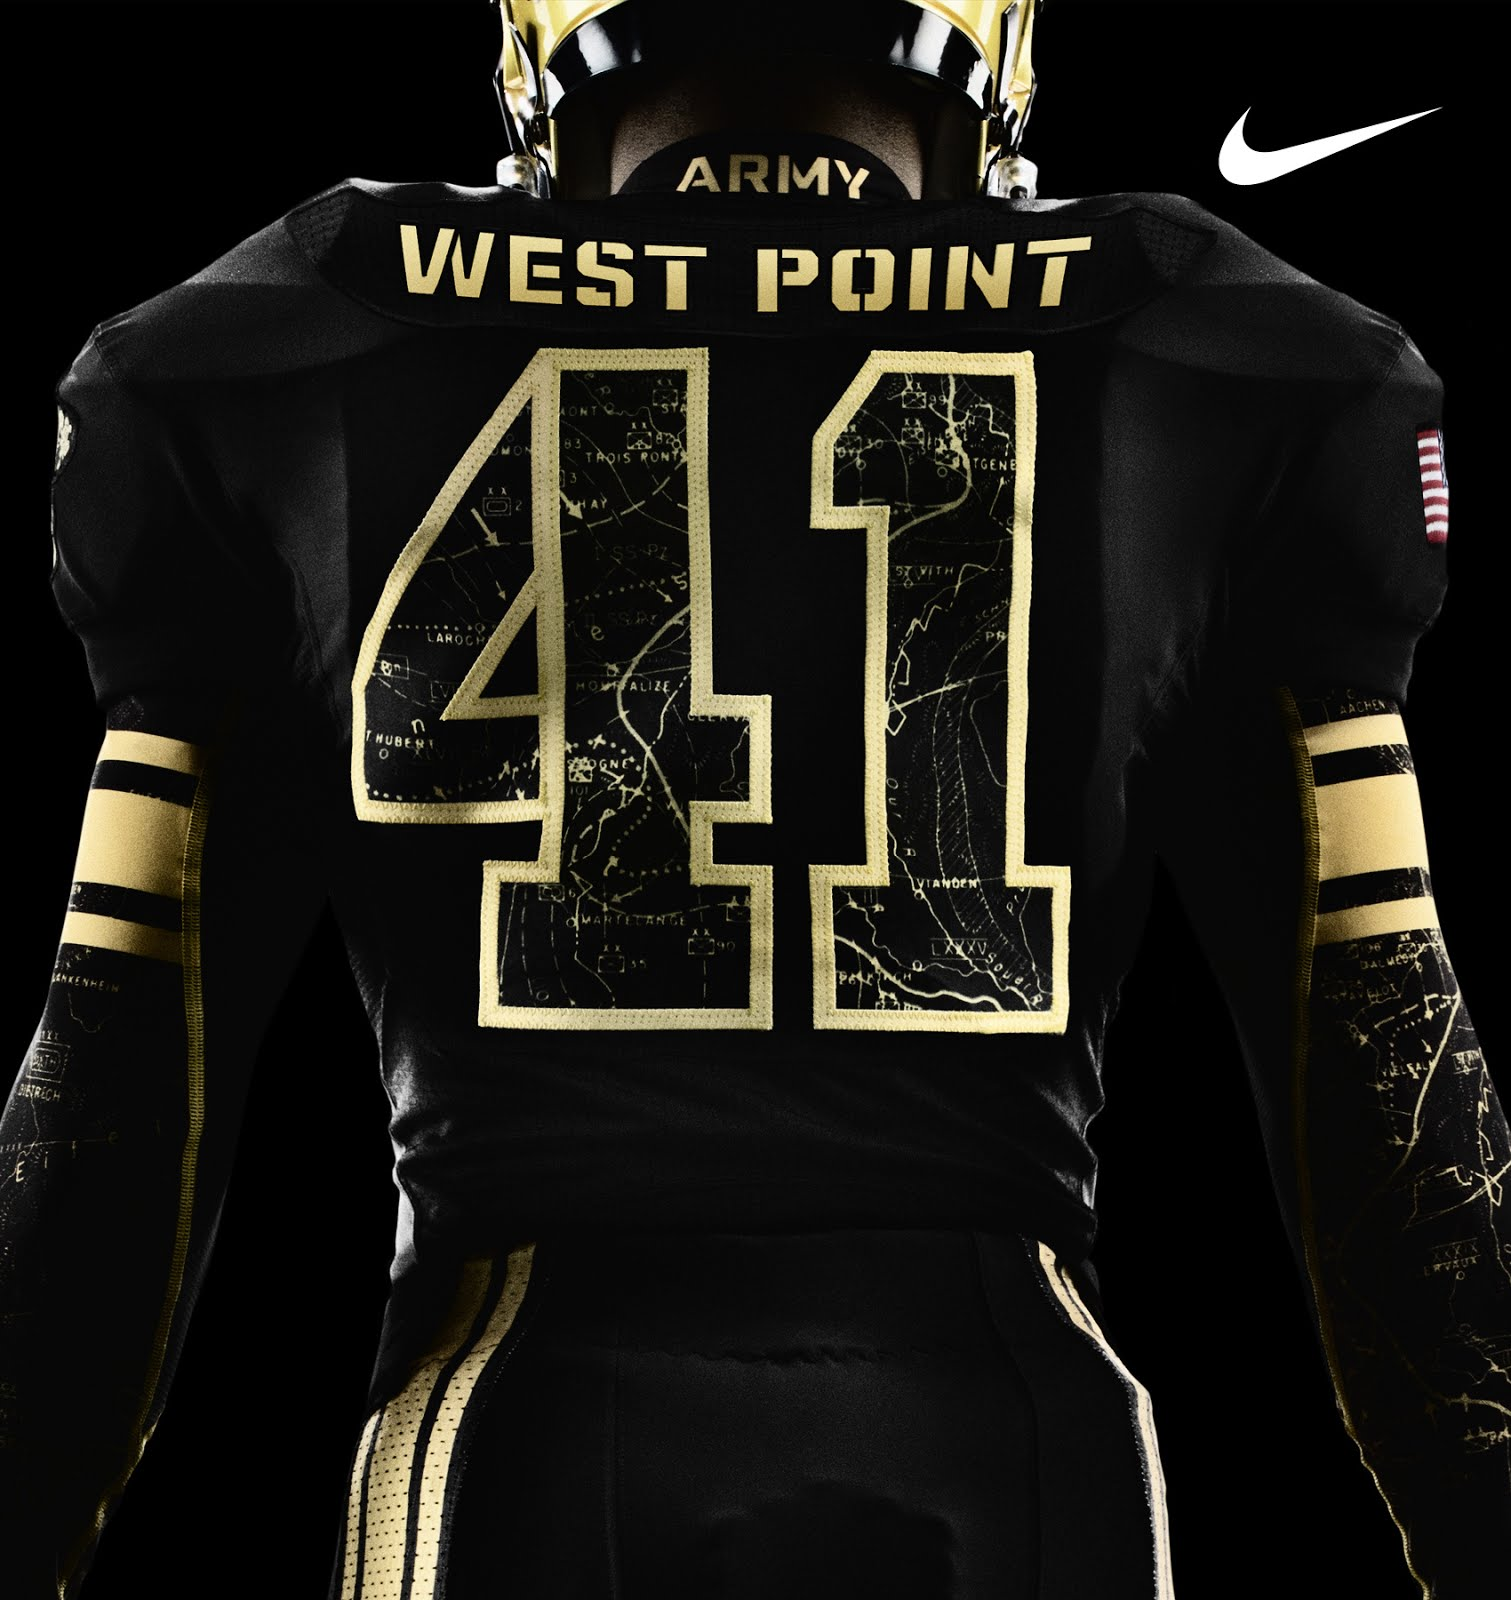 Army Black Knights Football Wallpaper >> Army Black Knights Wallpaper - WallpaperSafari